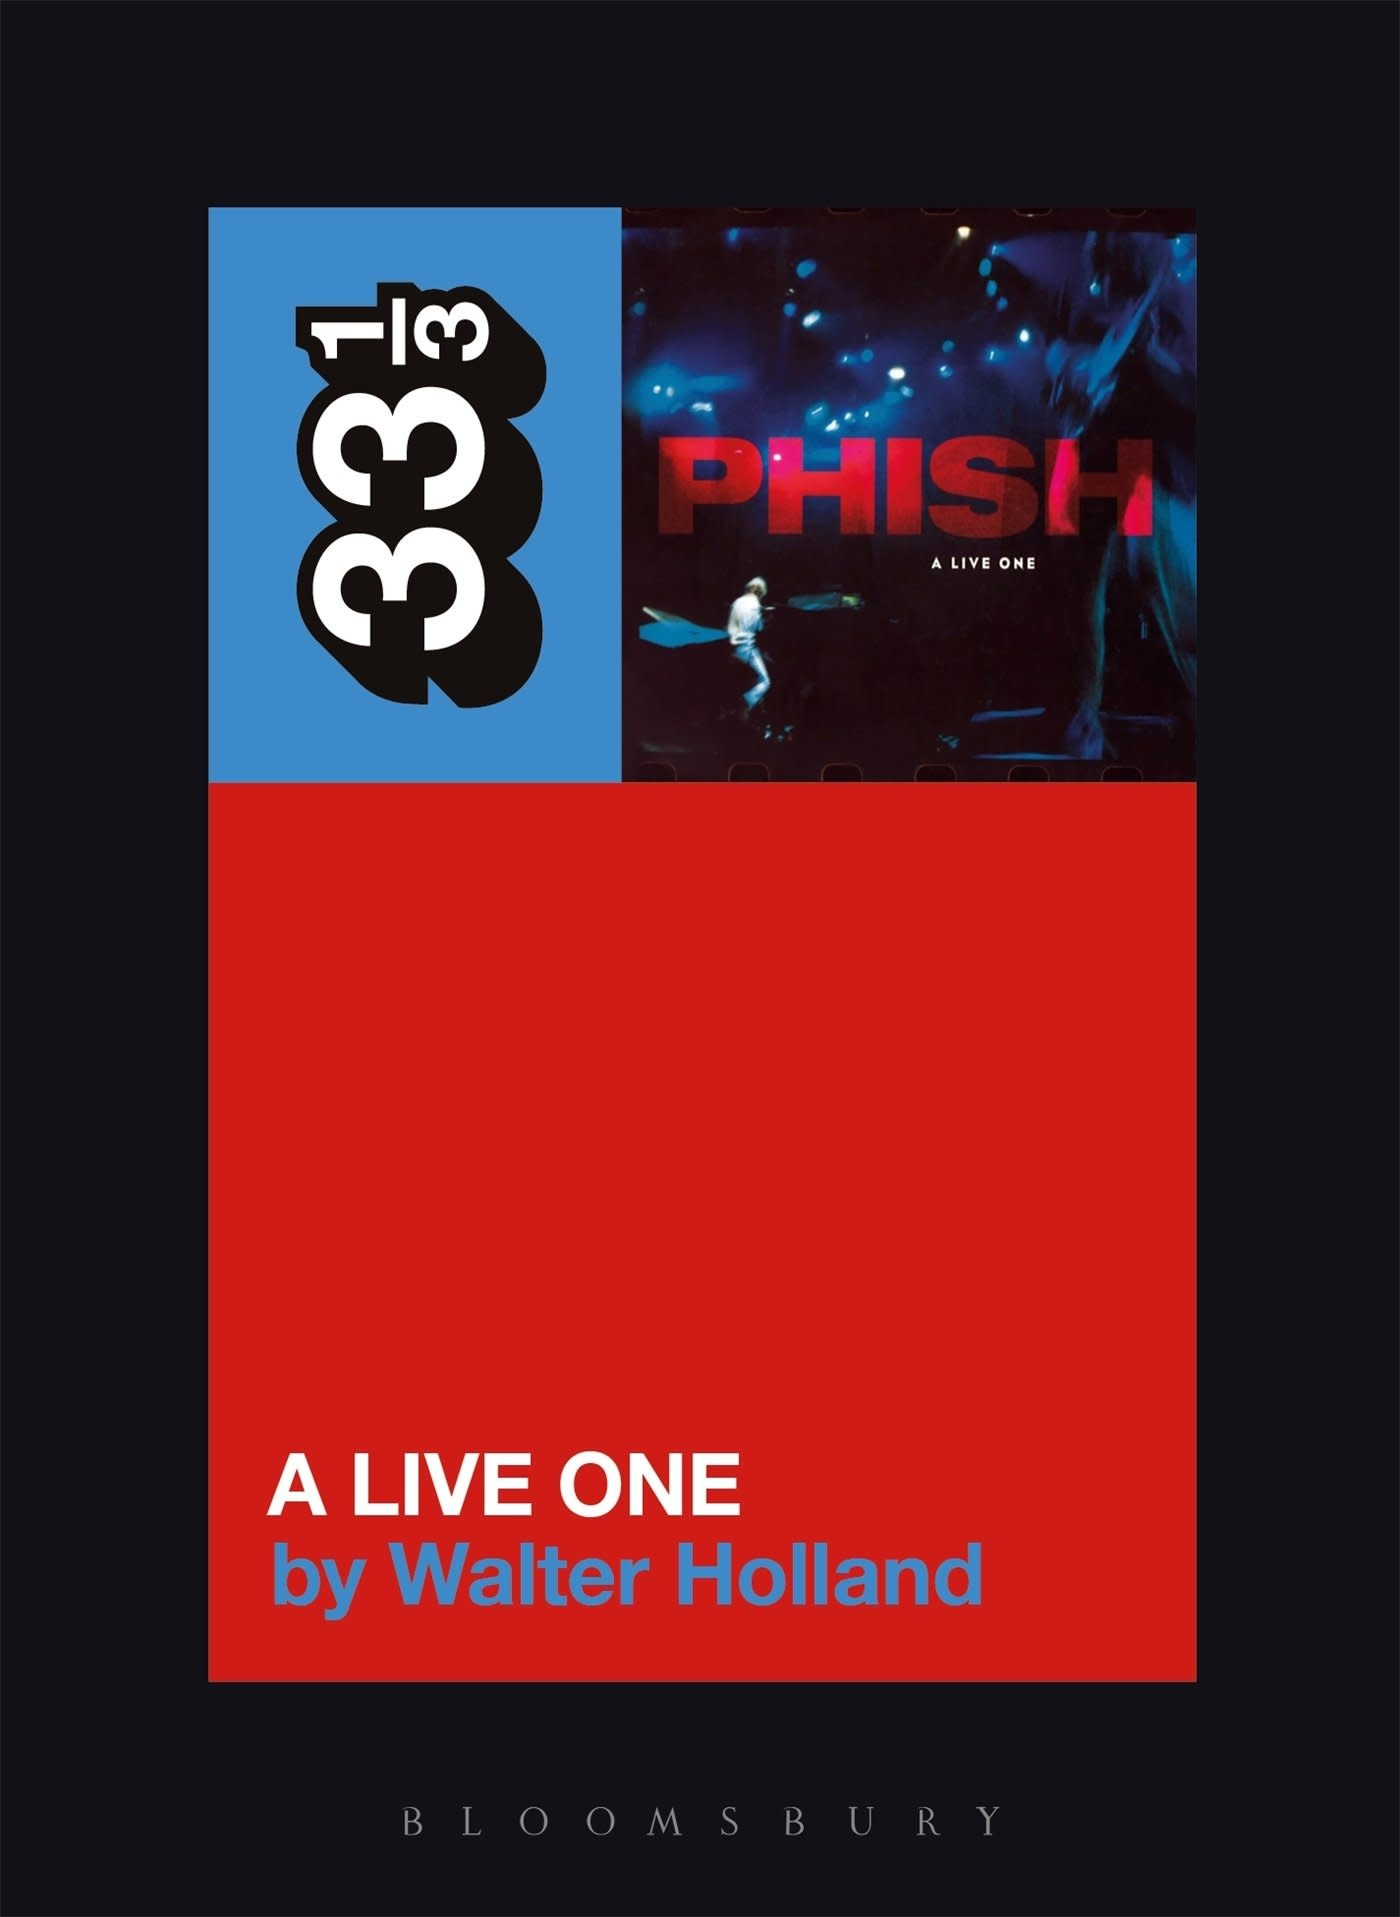 33 1/3 Series 33 1/3 - #109 - Phish's A Live One - Walter Holland